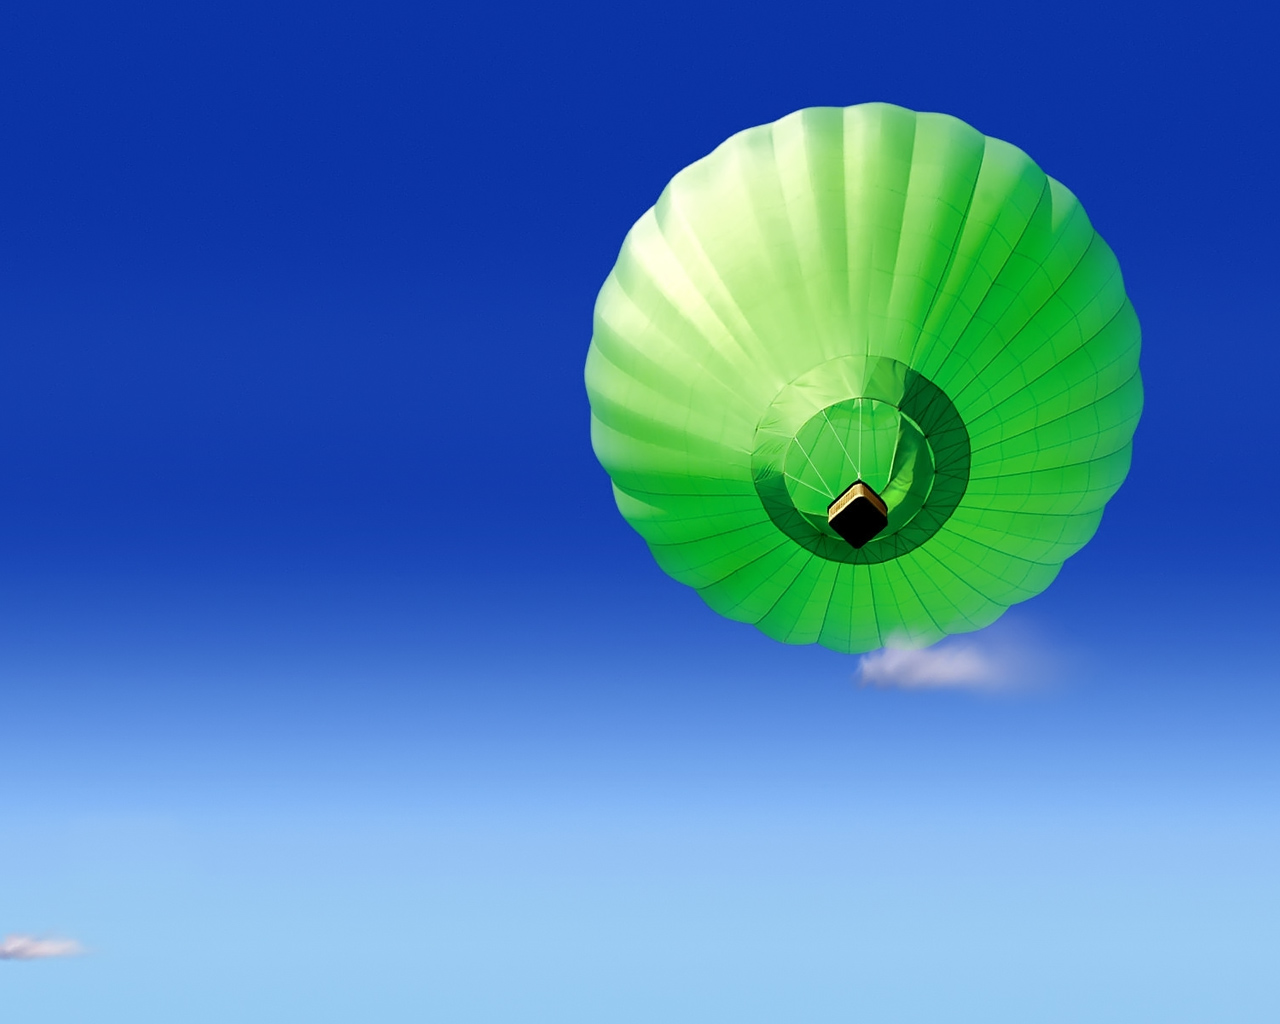 Green balloon on the sky